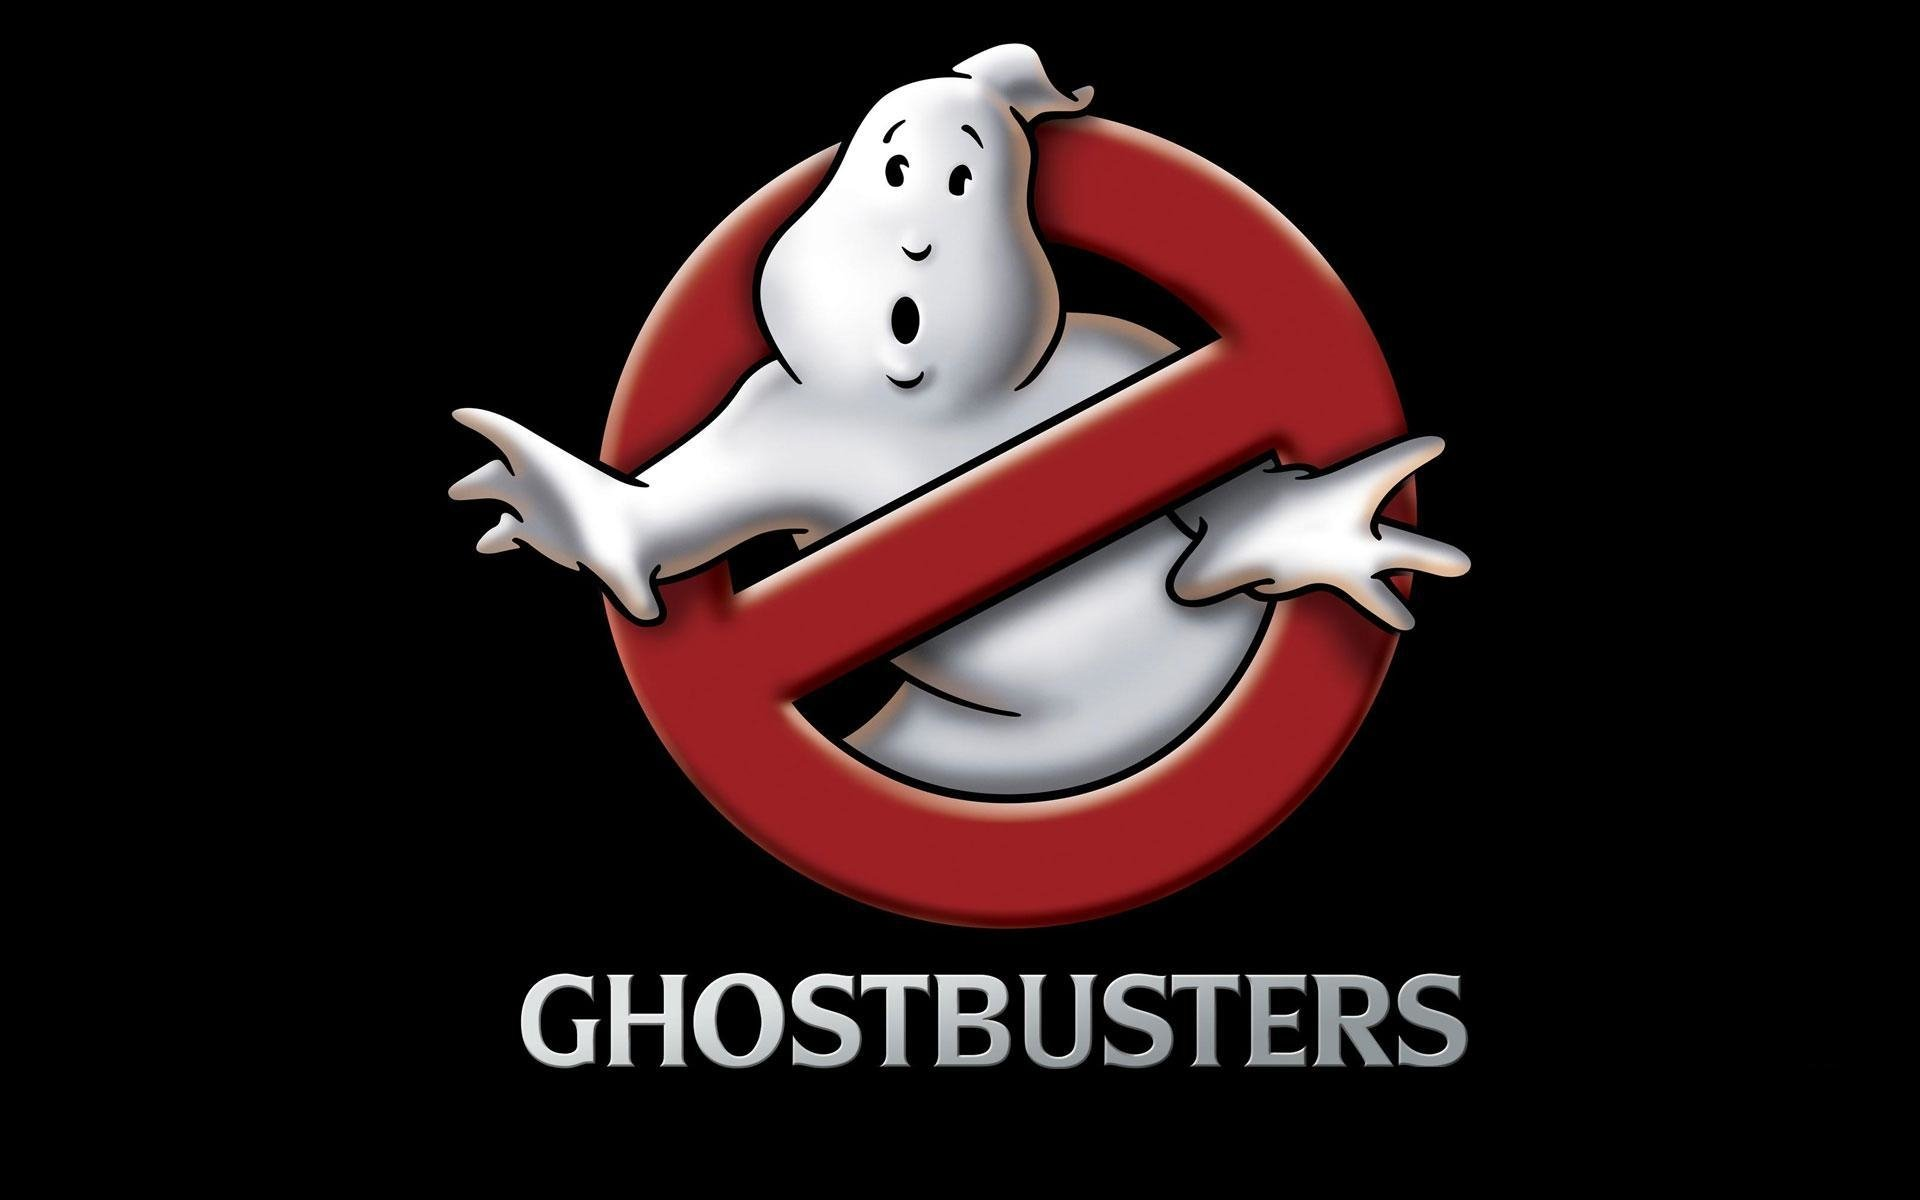 72 ghostbusters hd wallpapers | background images - wallpaper abyss